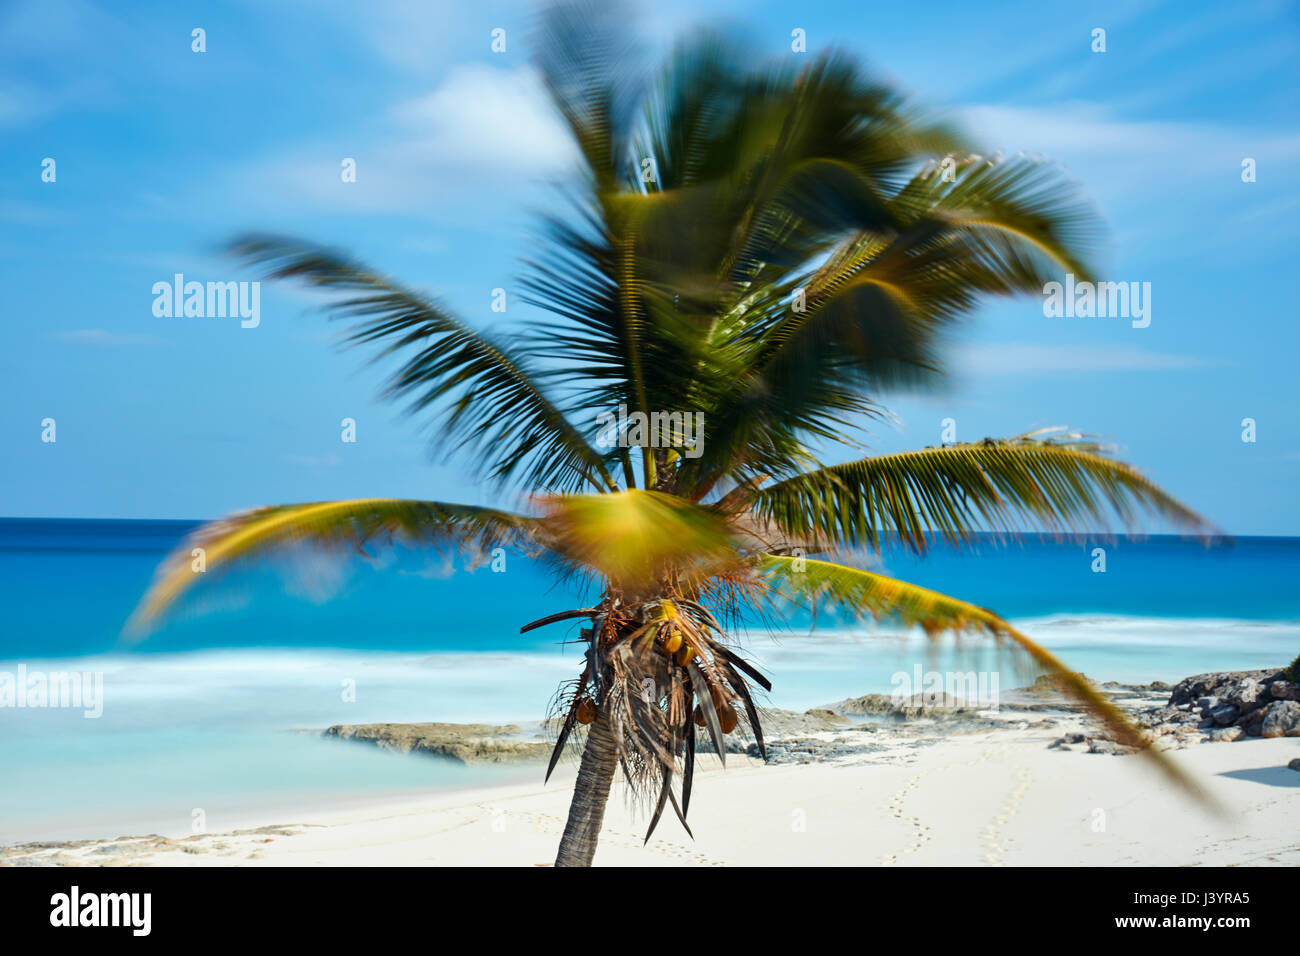 Coconut palm tree on the beach - Stock Image